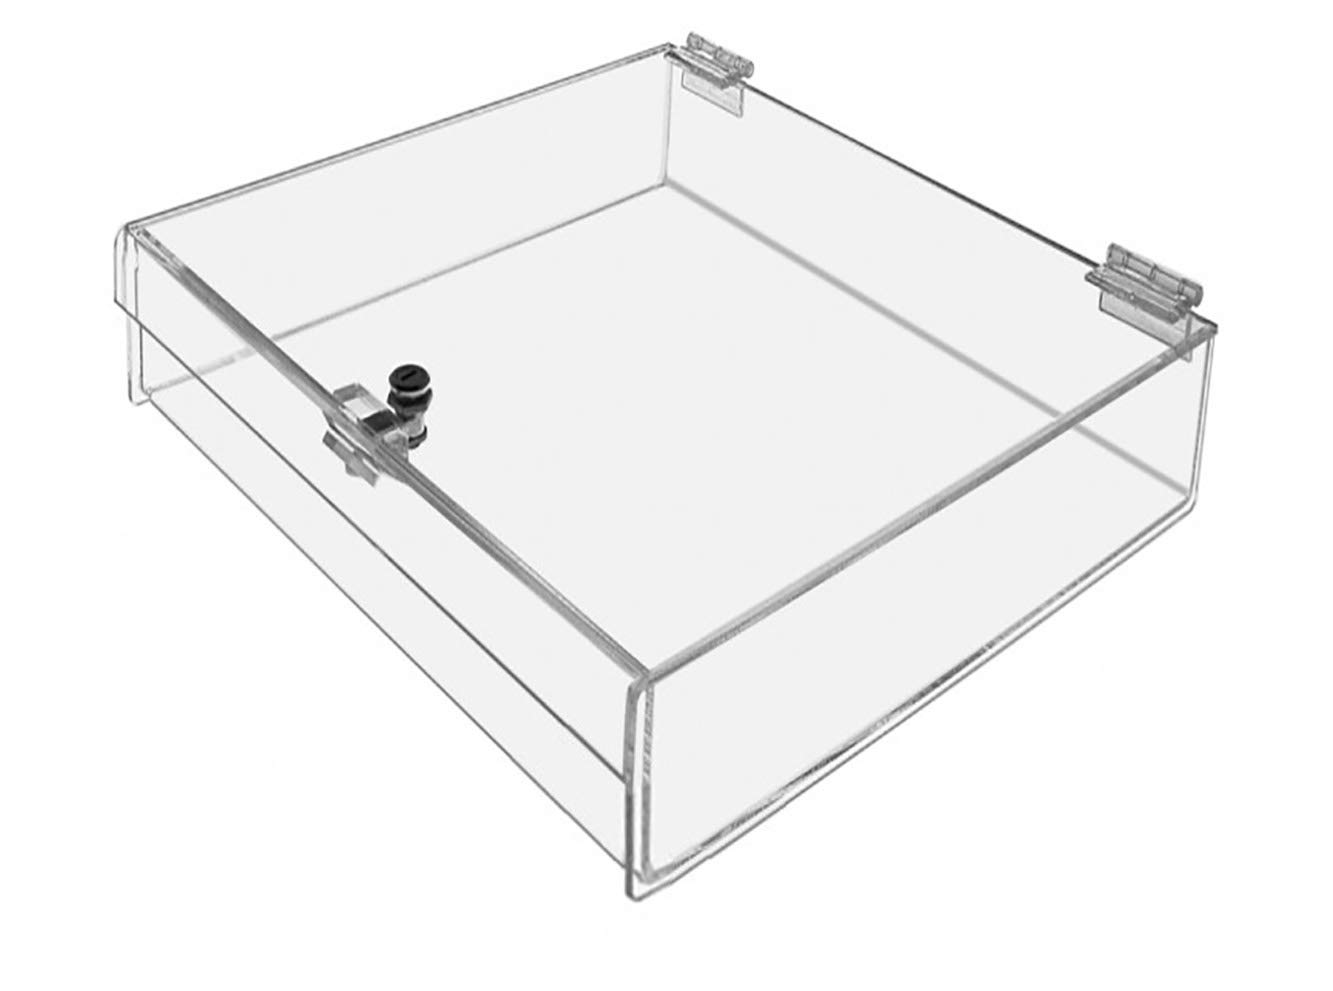 Marketing Holders Locking Case Security Show Safe Box Display Lucite Clear 24 w x 24 d x 3 h Qty 1